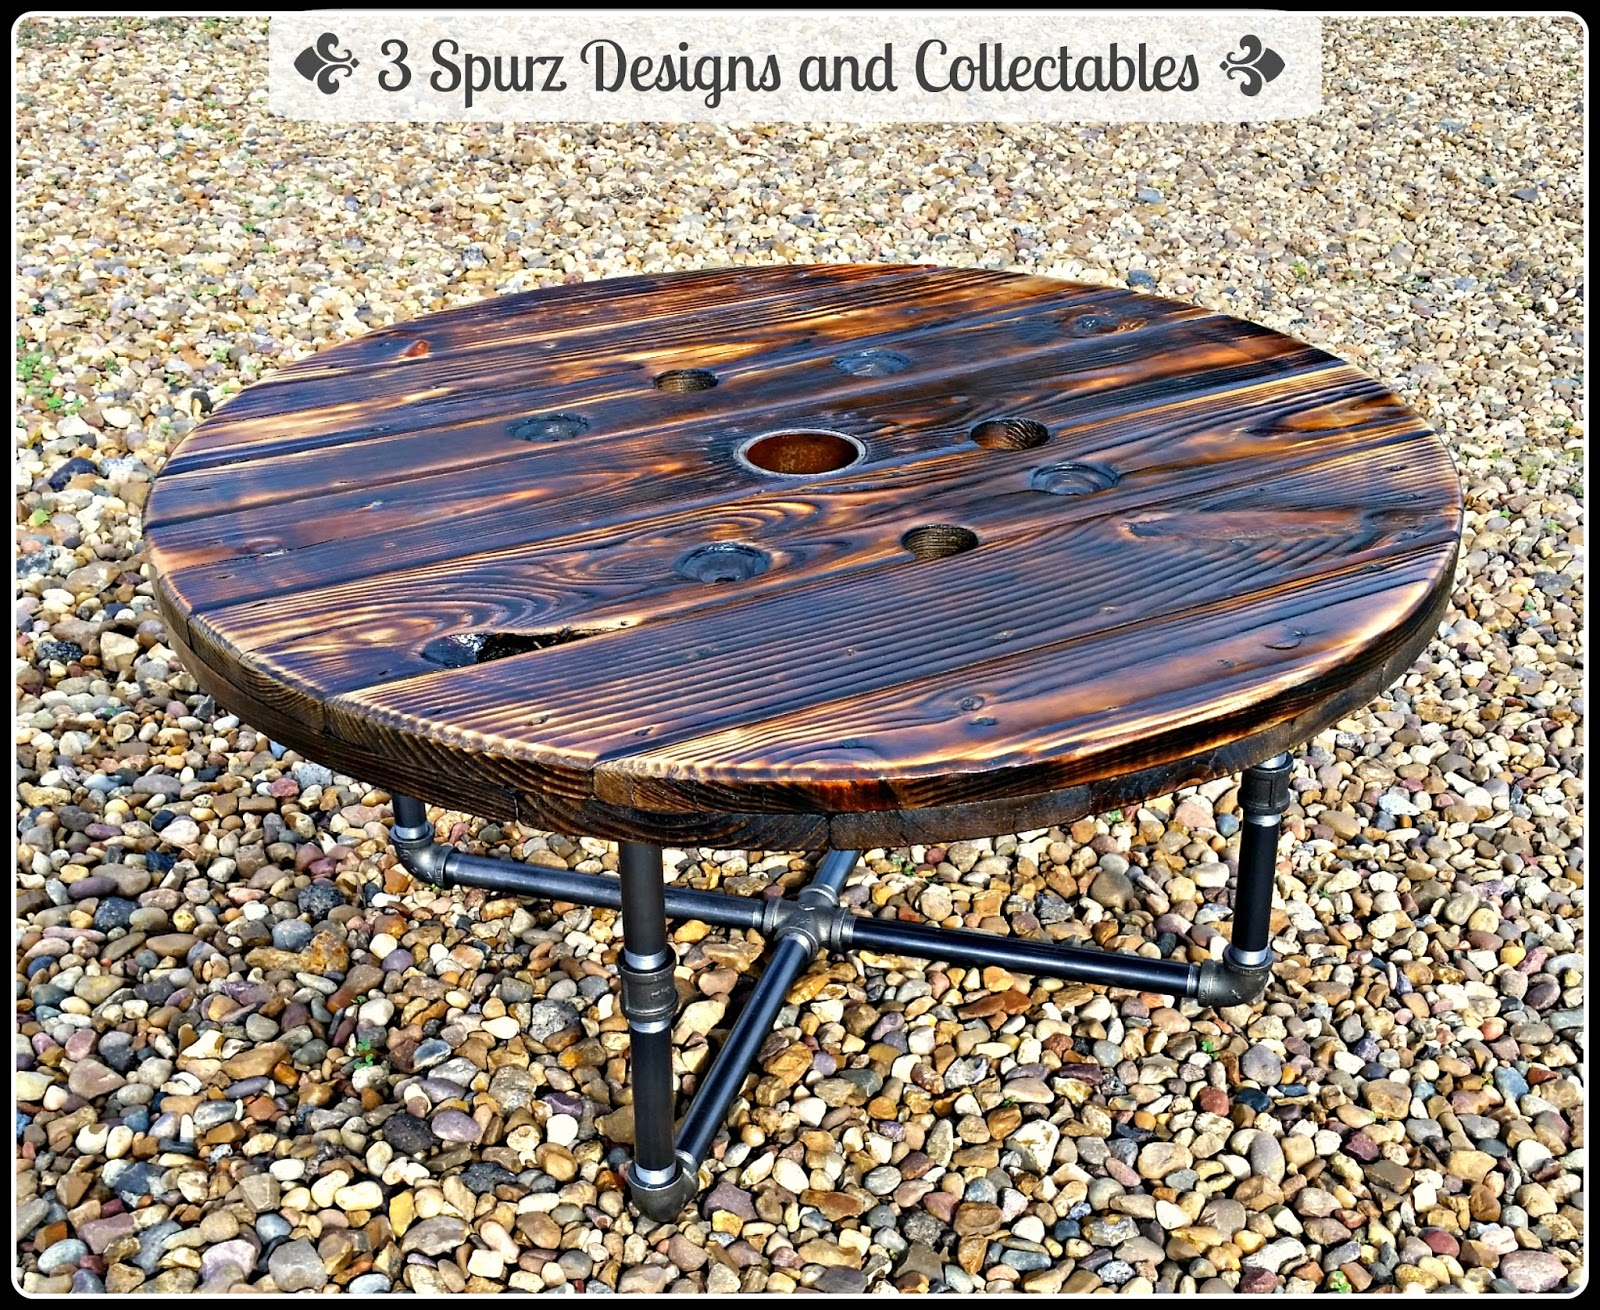 What Says Better Than A Wooden Spool Top Burned To Bring Out The Grain With Pipe Legs